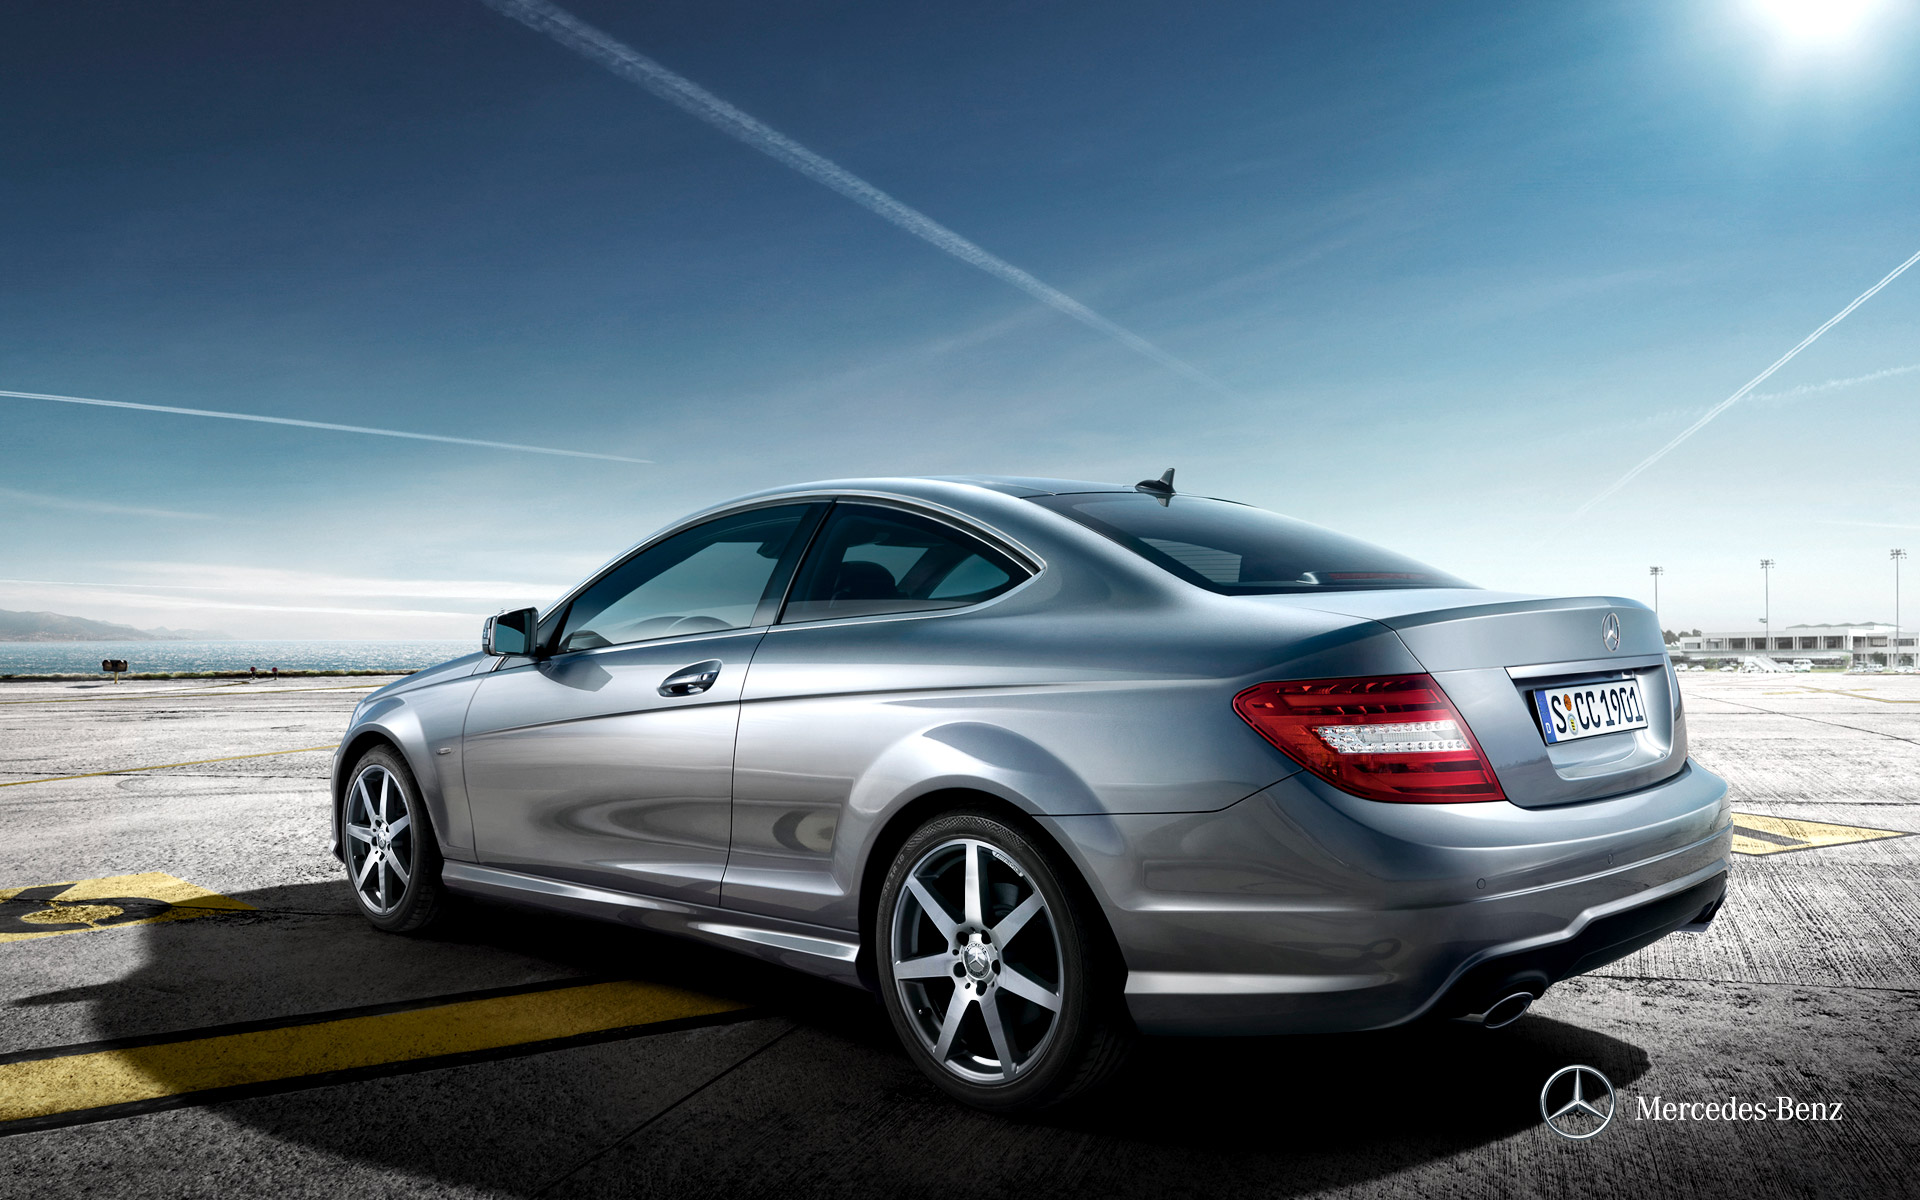 Mercedes benz c class 2012 c 200 in uae new car prices for Mercedes benz c classes